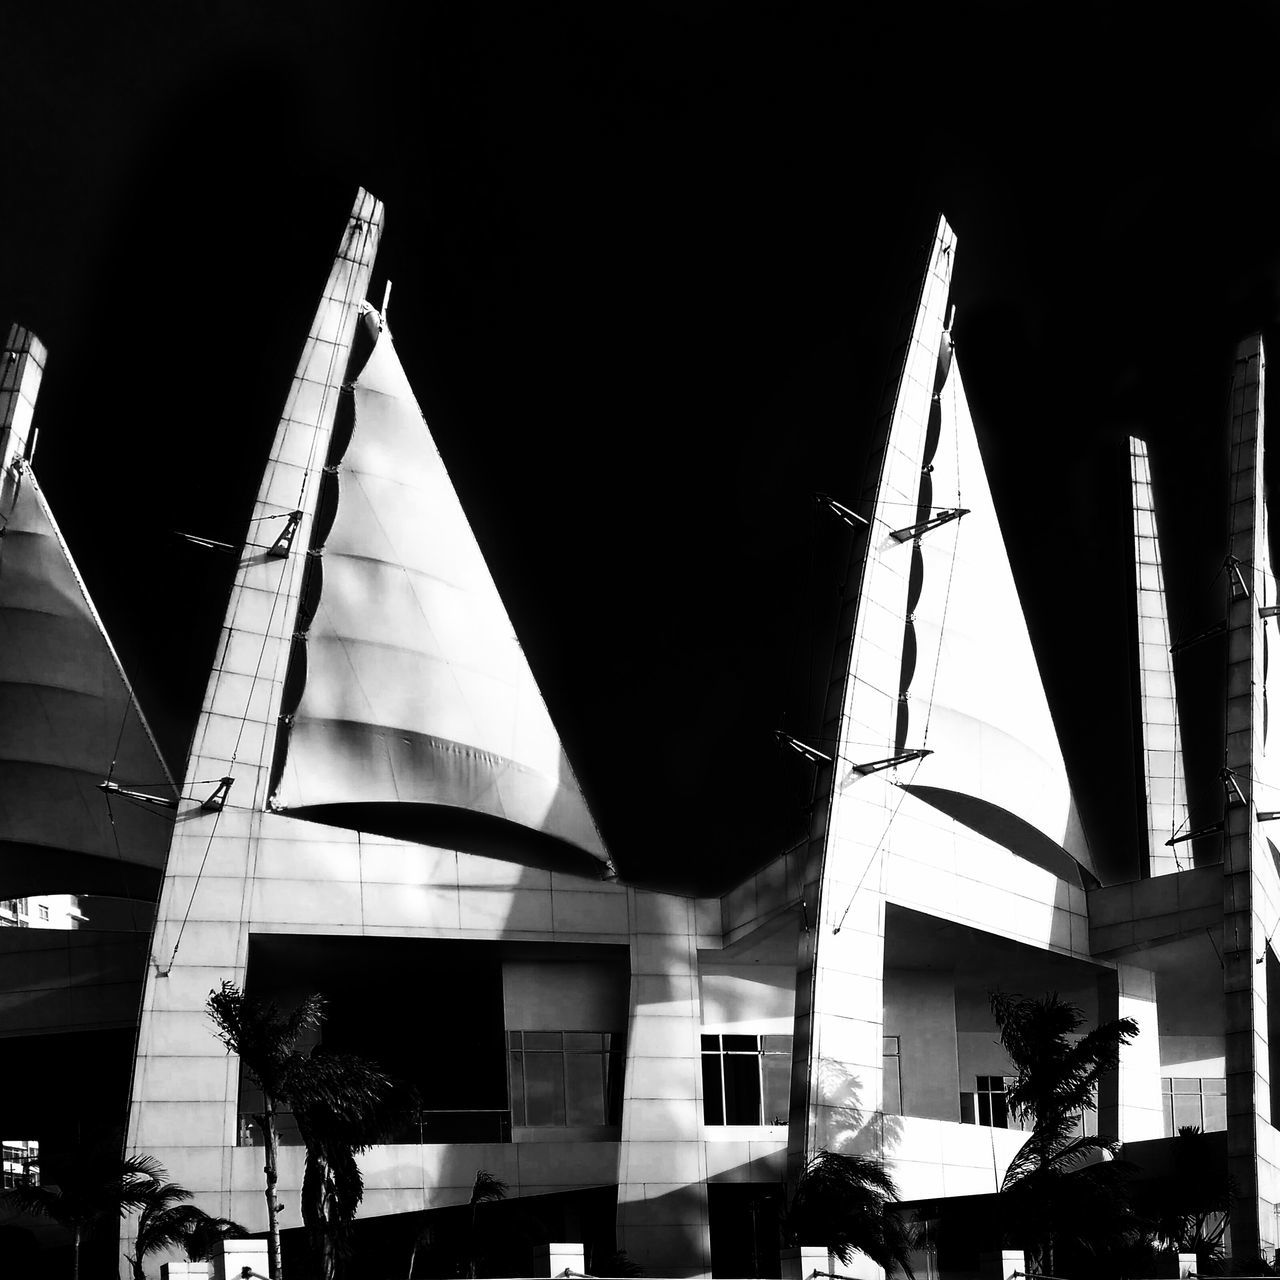 The Black Parade Architecture No People Architecture Blackandwhite Architectural Detail Building Mobilephotography Lines Architectural Blackandwhite Photography Architecture_bw Blackandwhitephotography Mobile_photographer Black&white Urban Geometry Architecturephotography Architectural Feature Diminishing Perspective Geometric Shape Urbanphotography